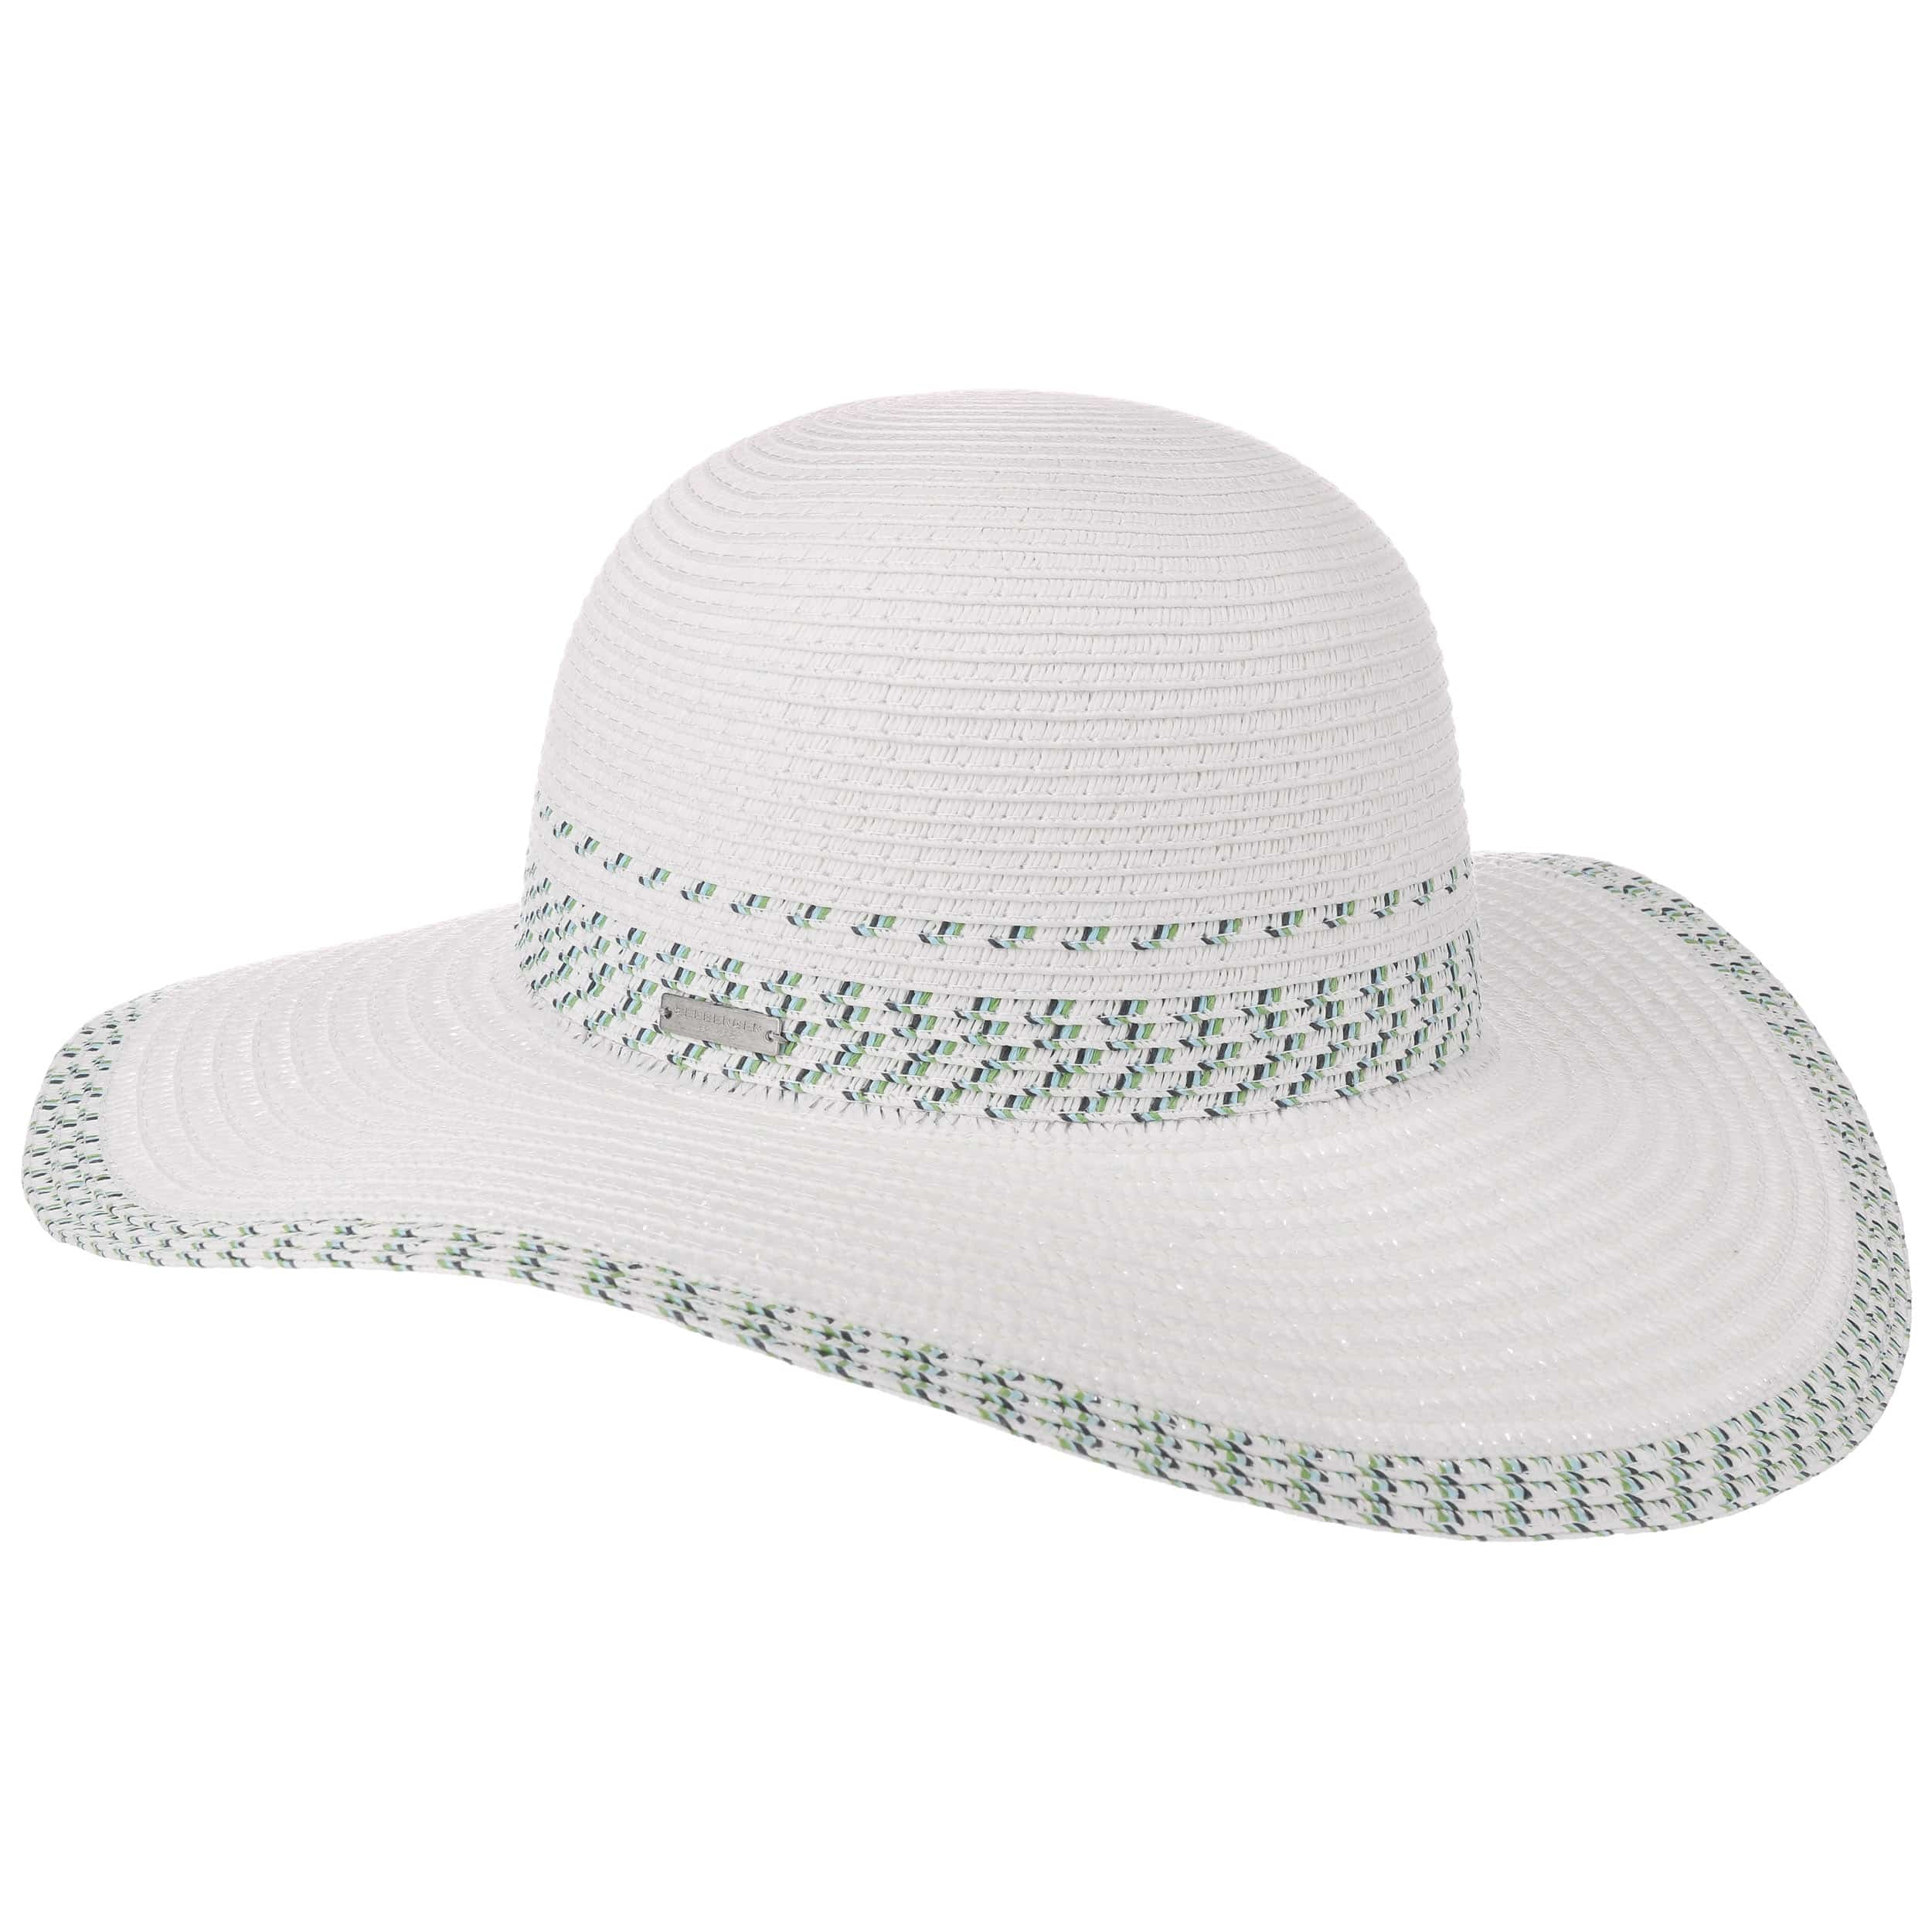 Calapina Flapper Floppy Hat by Seeberger cb0dc5d6851